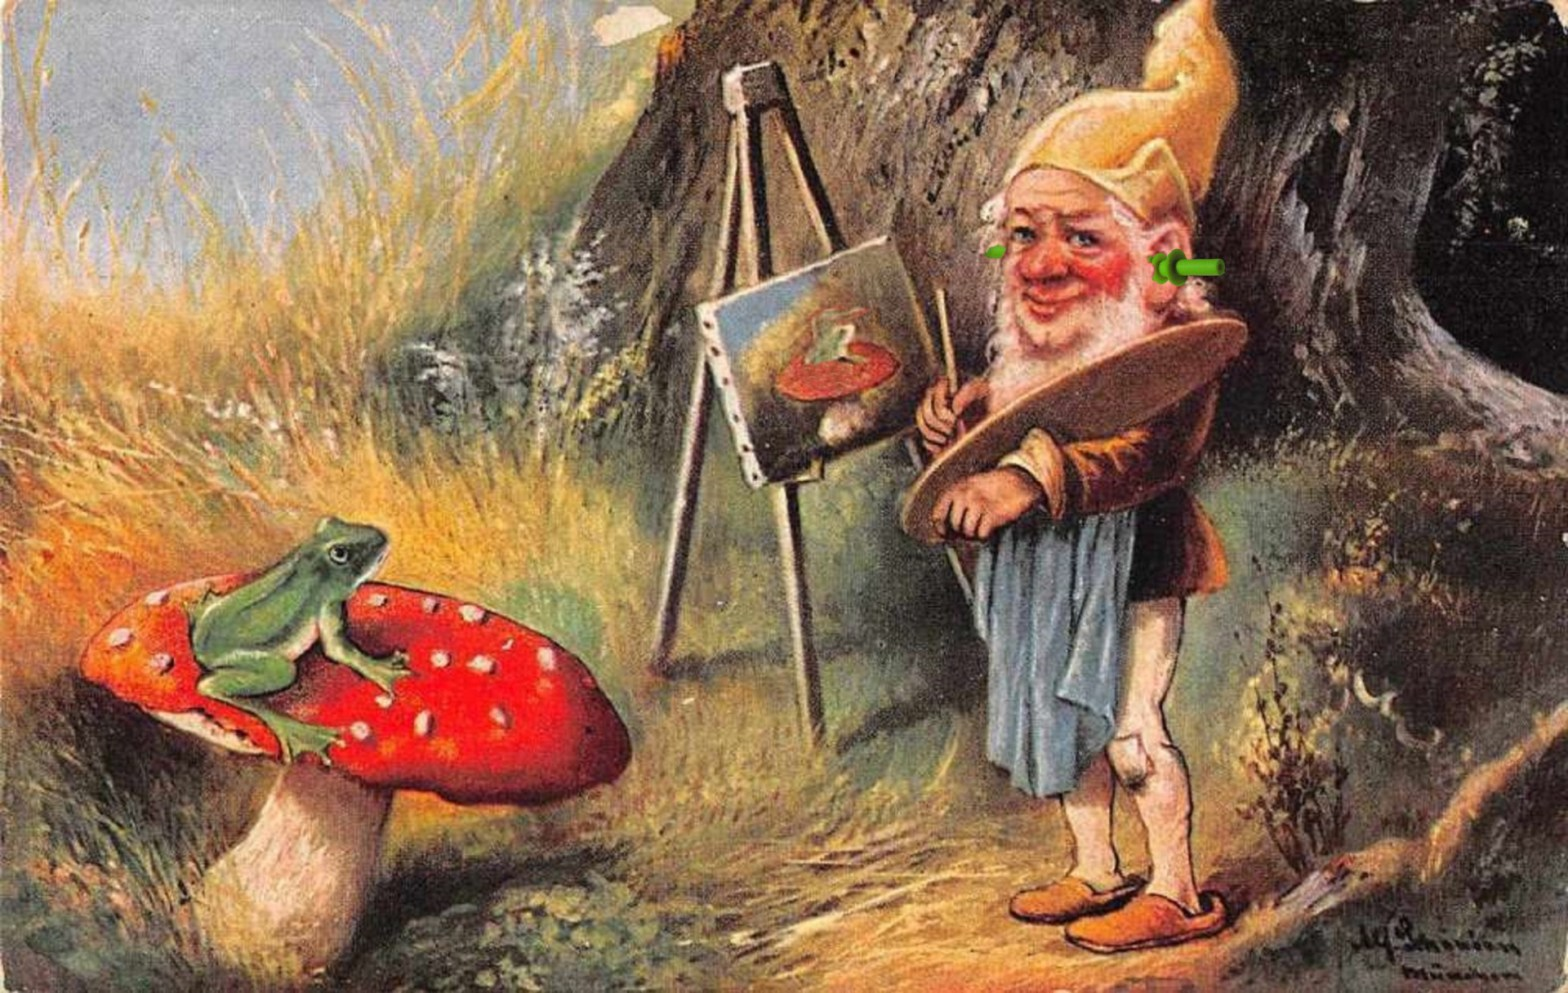 CC BY 2.5 by Light_current (earplug) and Poikilos (photomanip); Gnome Elf Painting Frog on Mushroom Artist Unknown Ca 1912 CC0